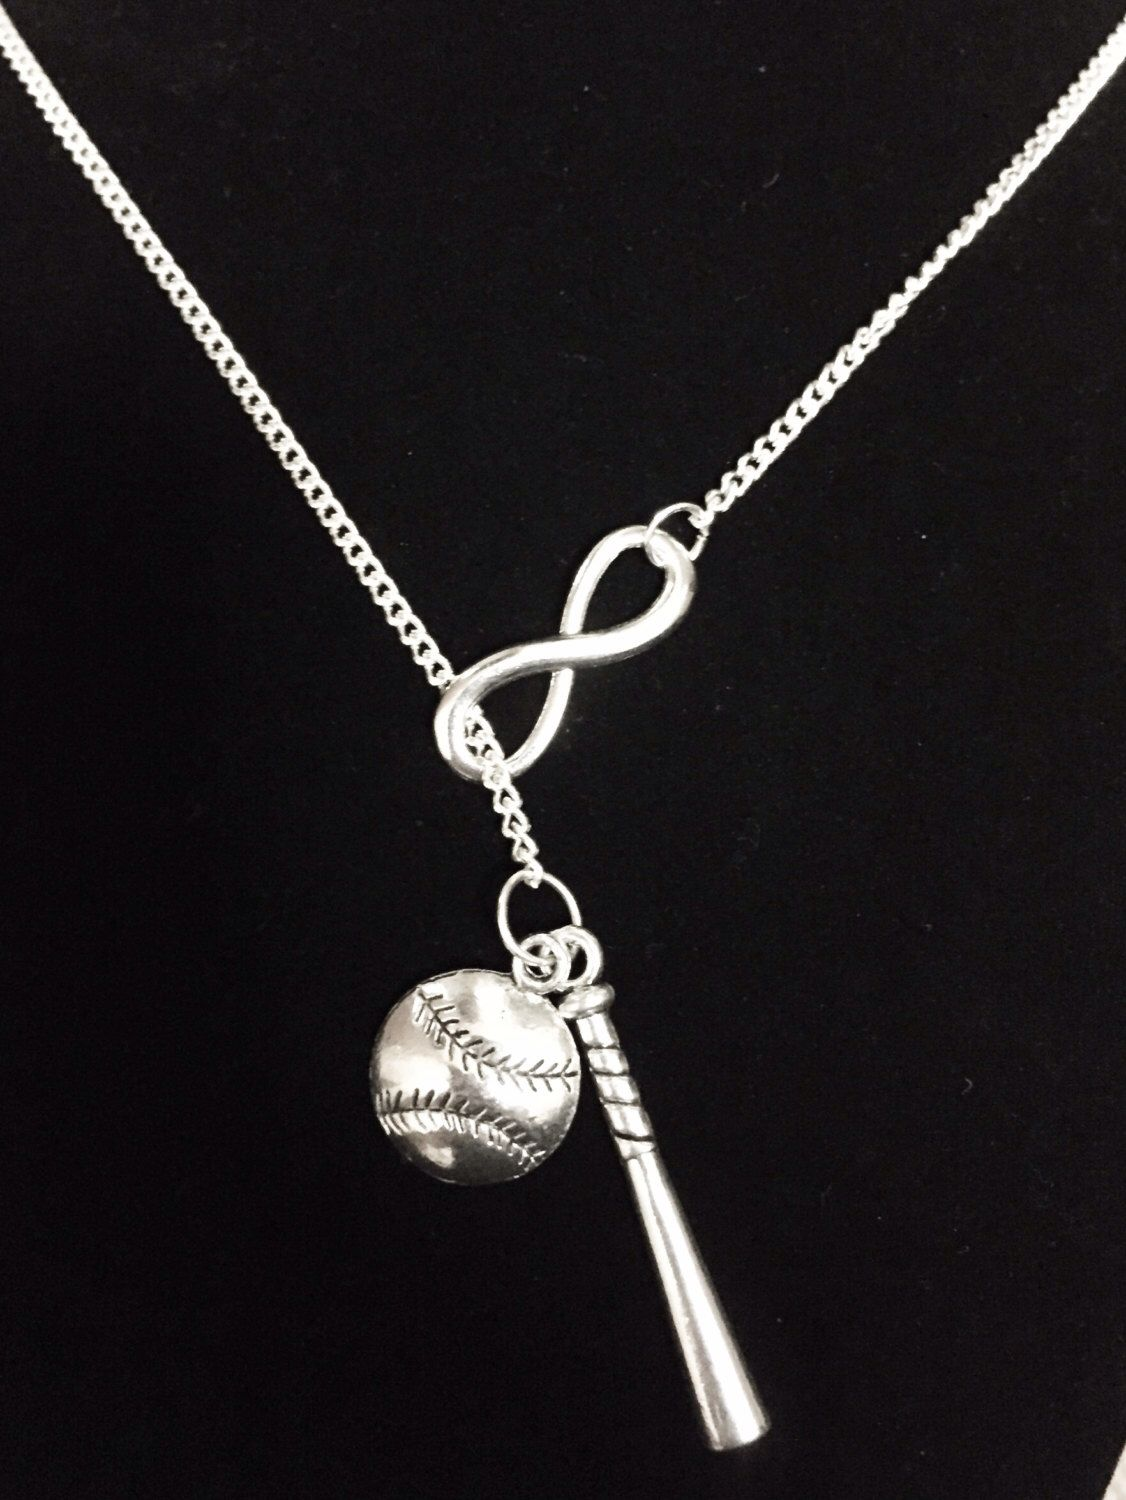 necklace pendant online with softball access product store baseball dhgate piece ce number s com on for